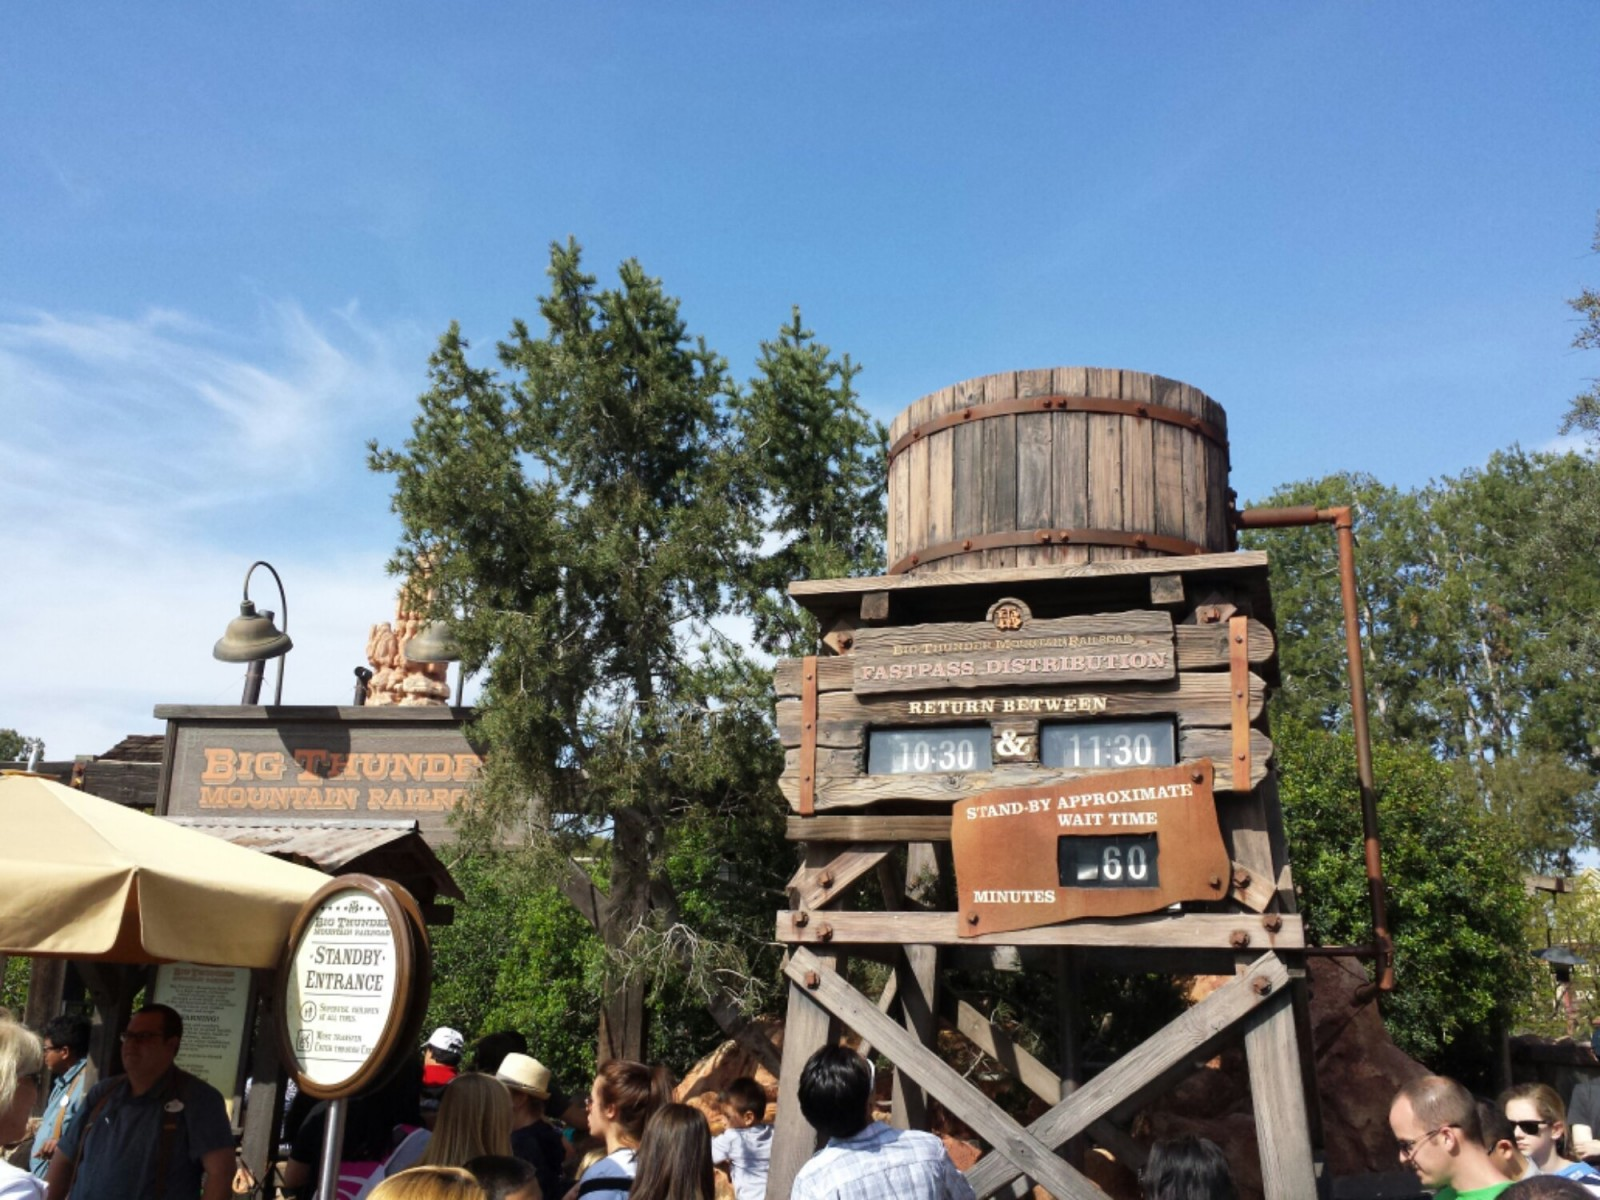 Big Thunder has an hour stand by and return time of 10:30 as of 3:45